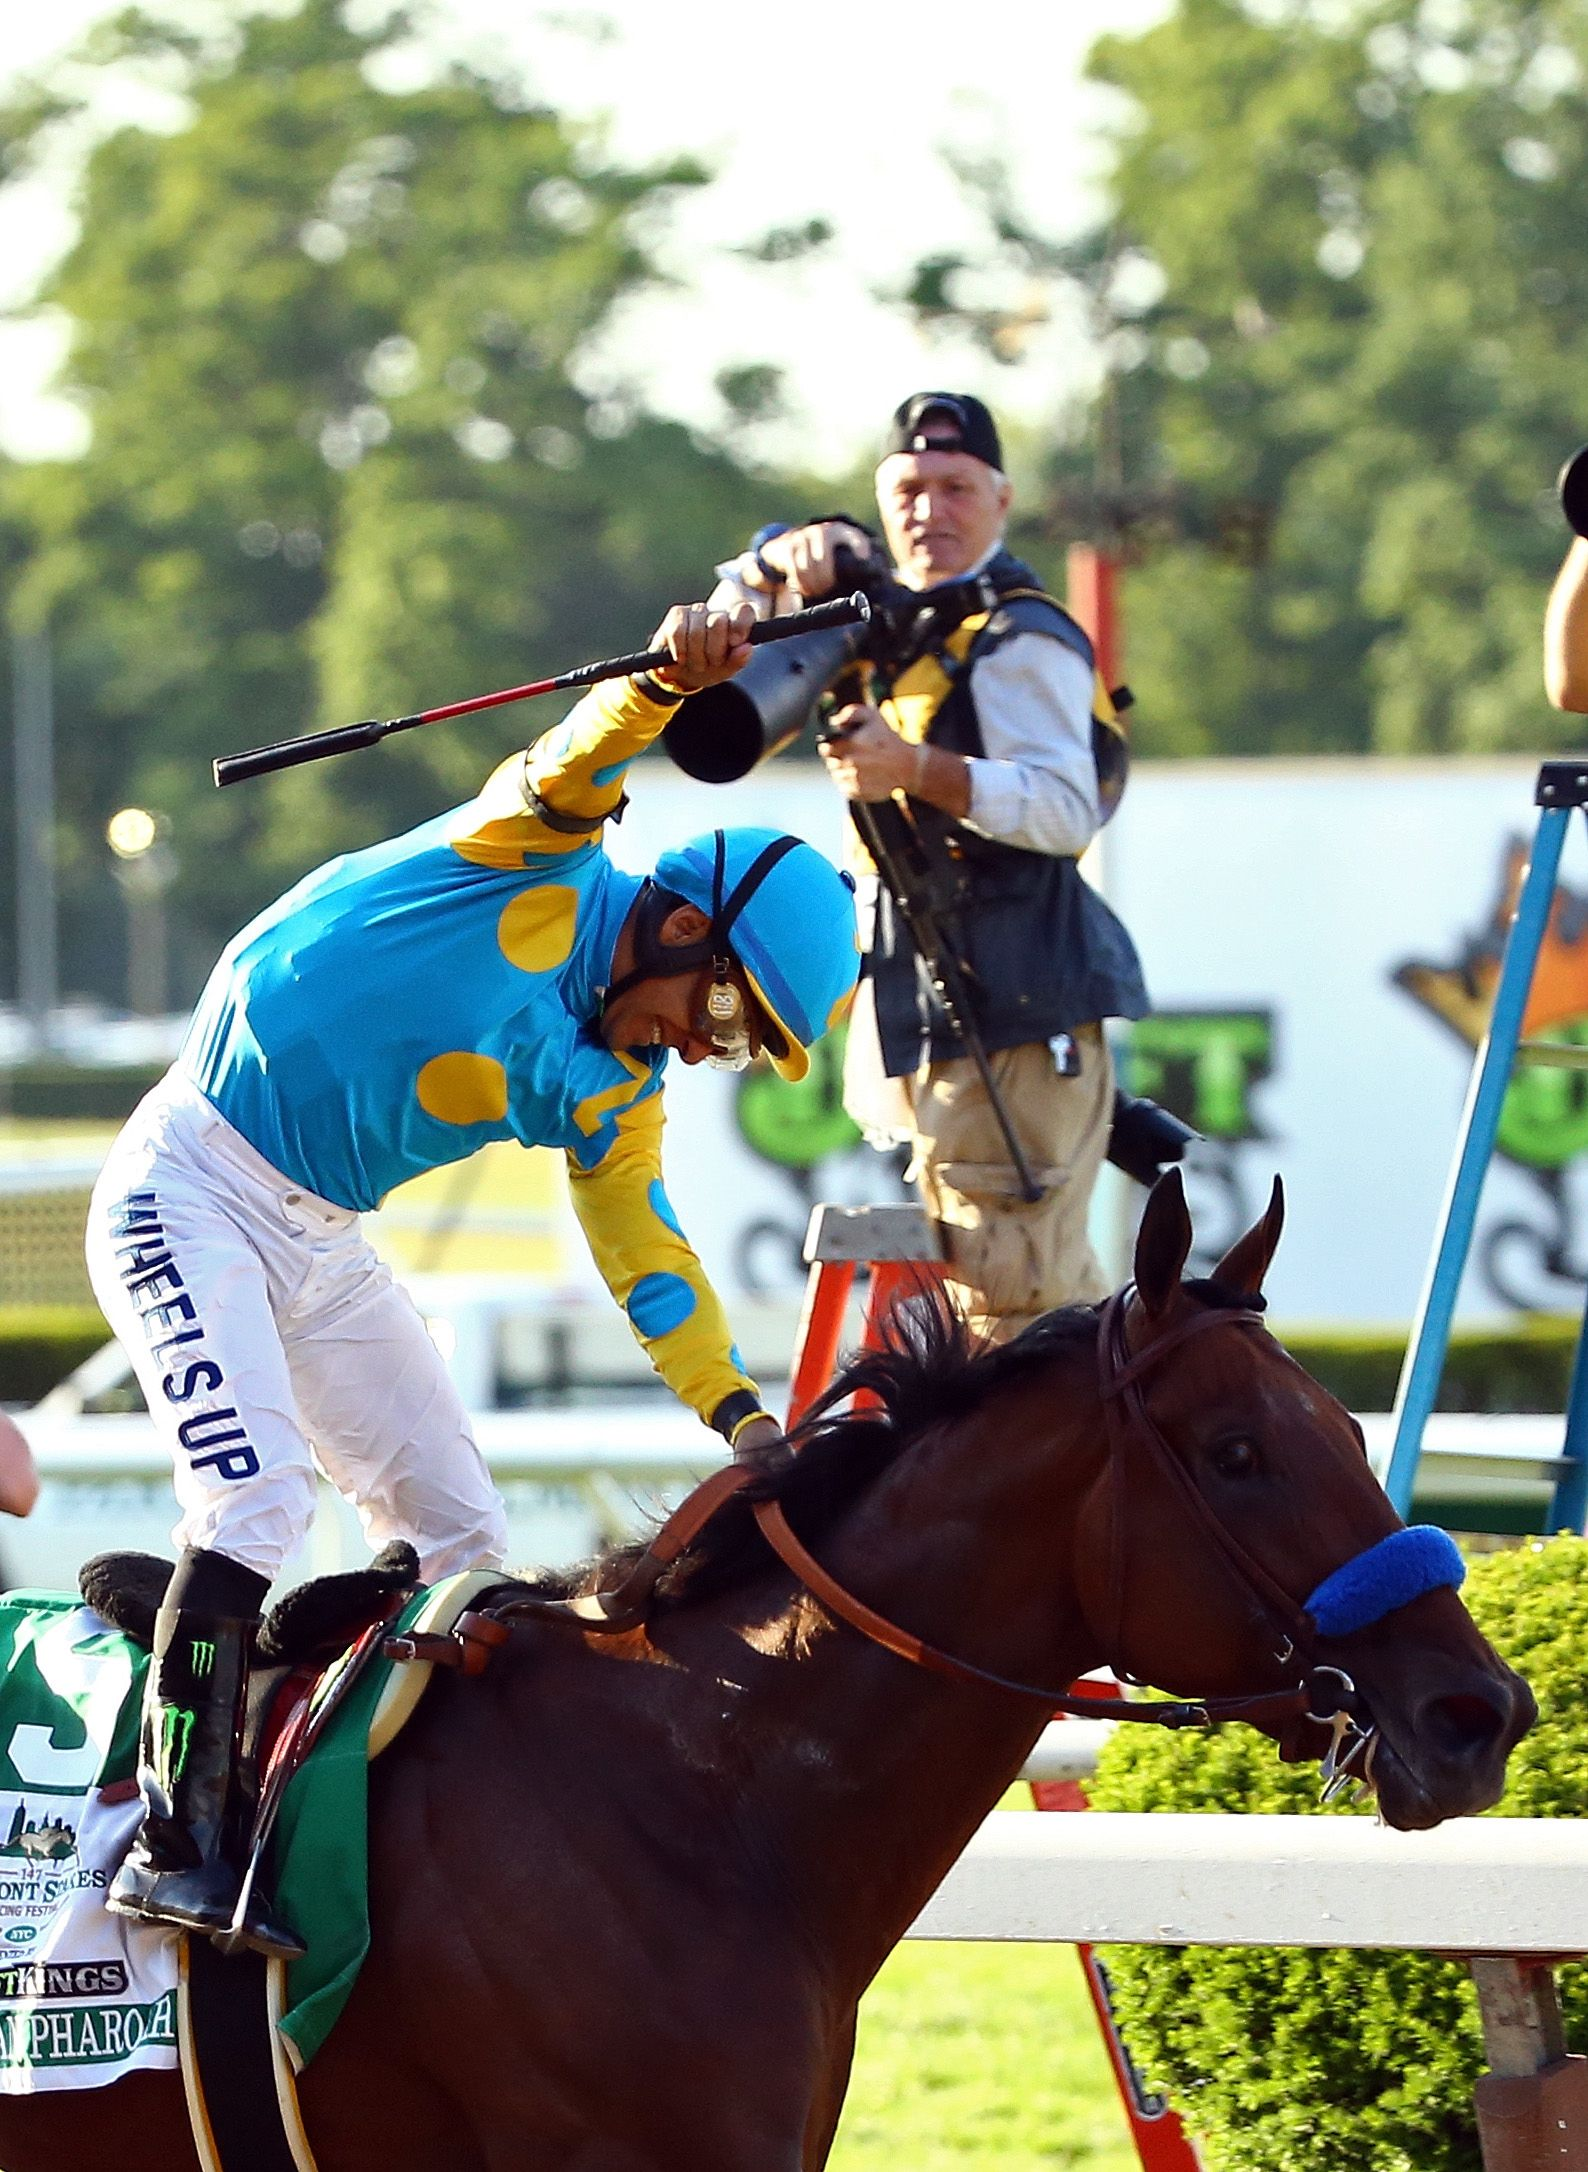 America Pharoah Wins Triple Crown